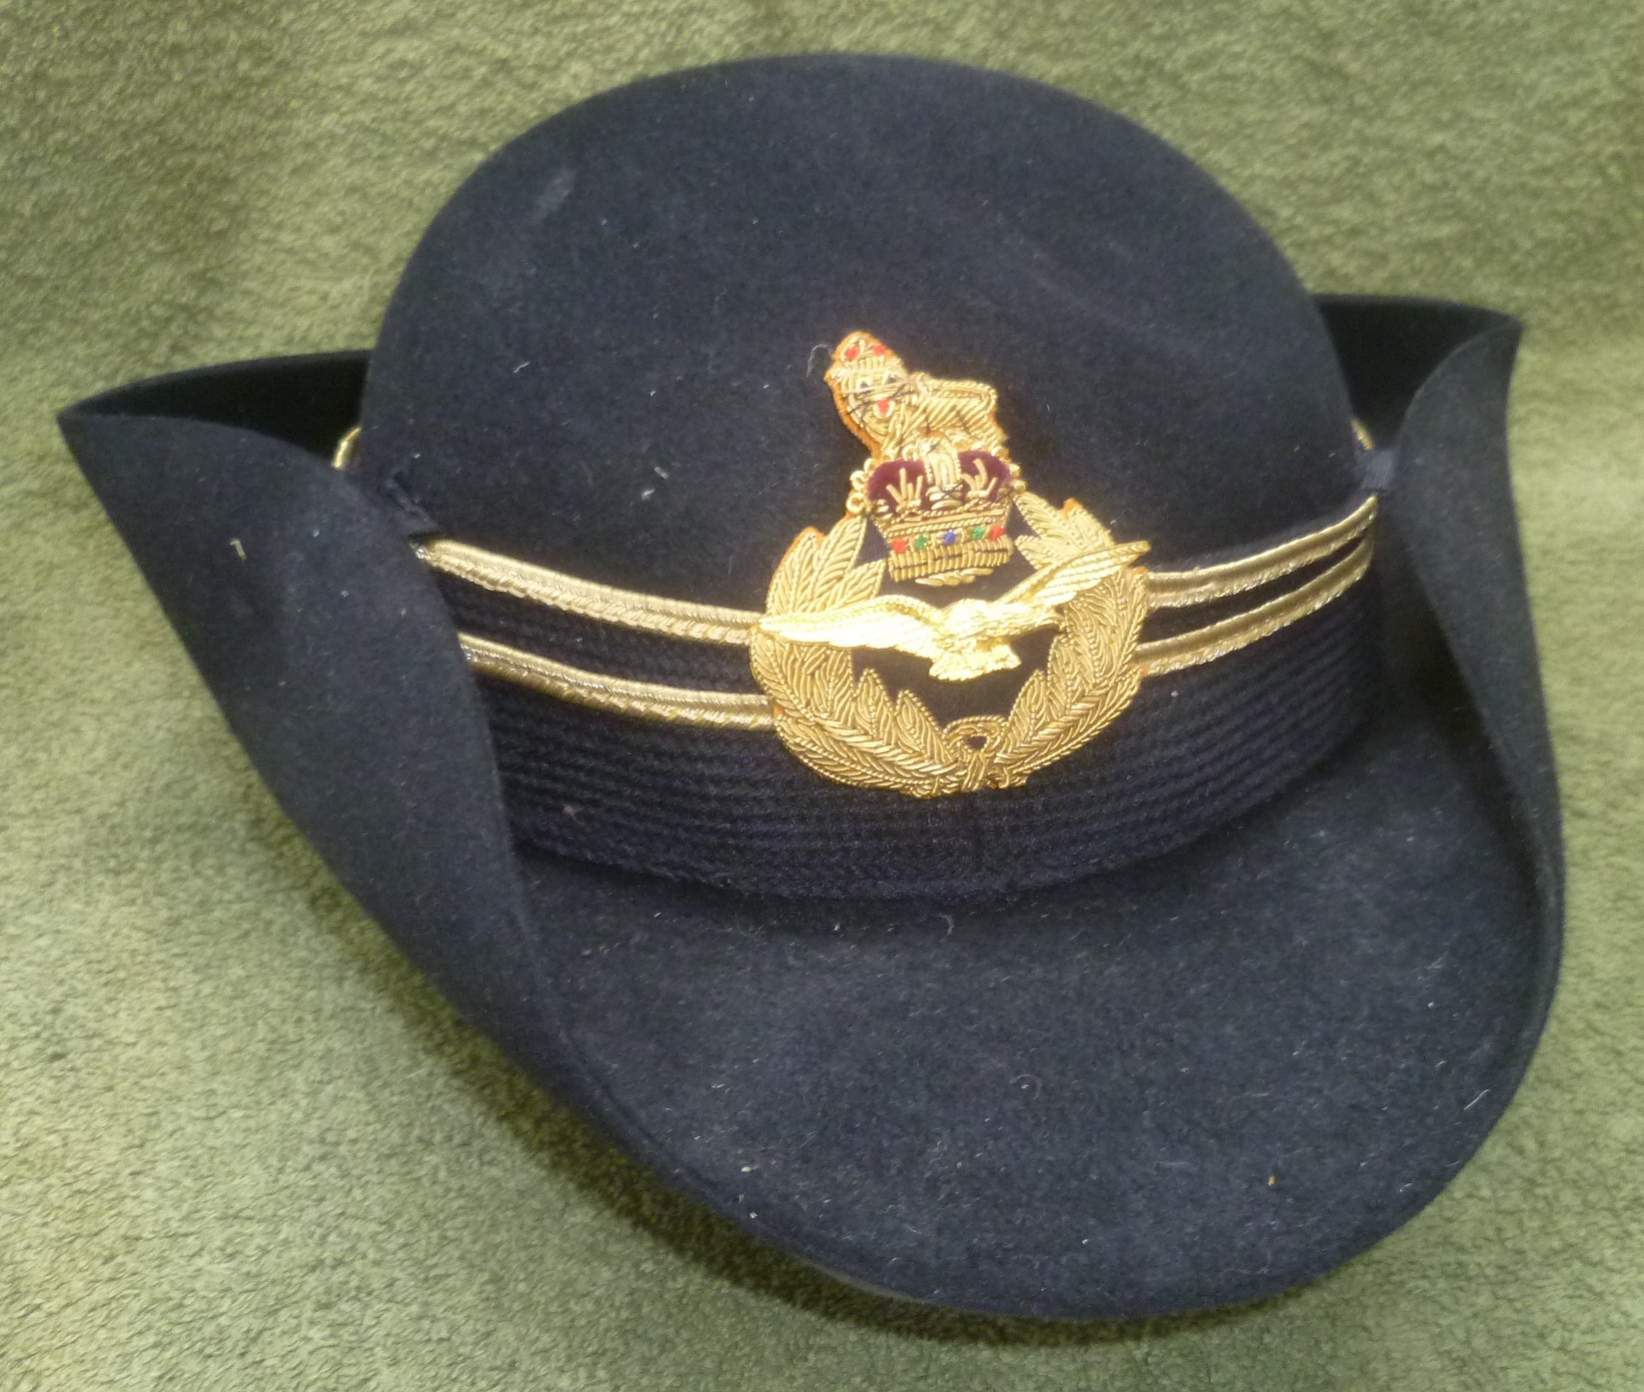 Royal Air Force Uniform Caps Hats And Helmets Page 8